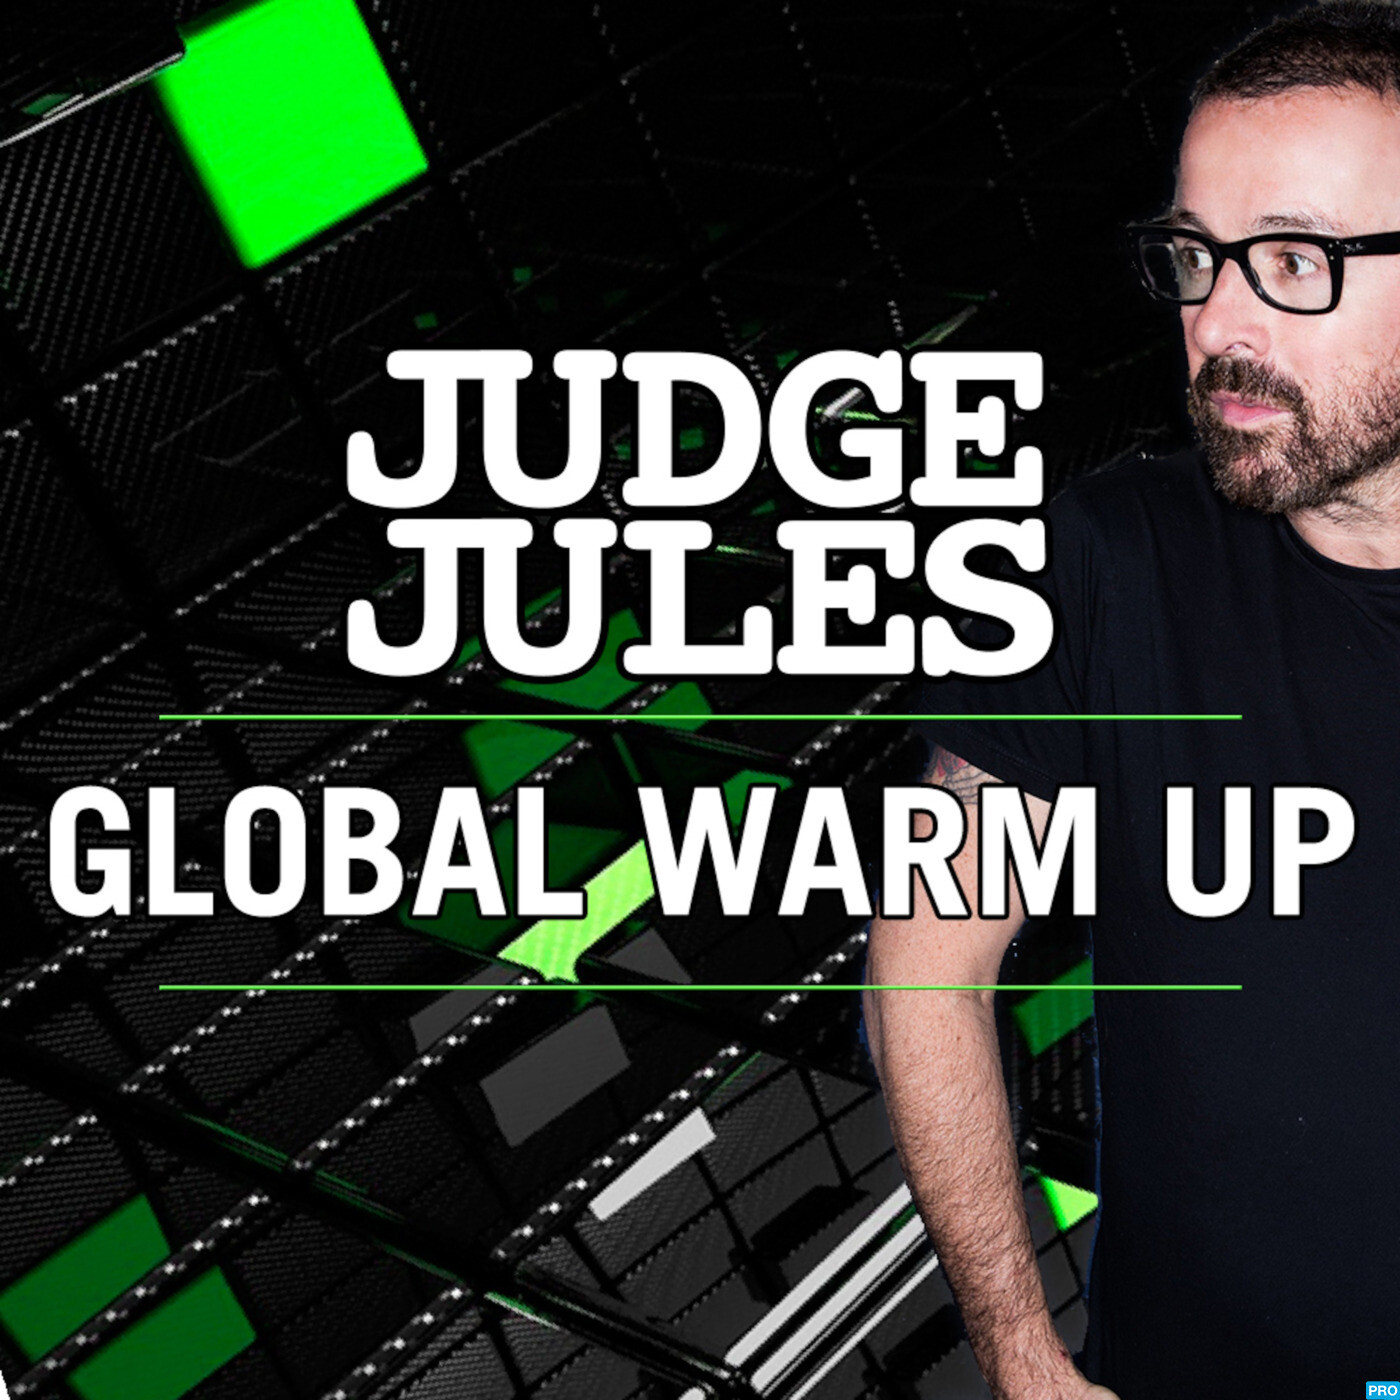 Judge jules presents the global warm up episode 749